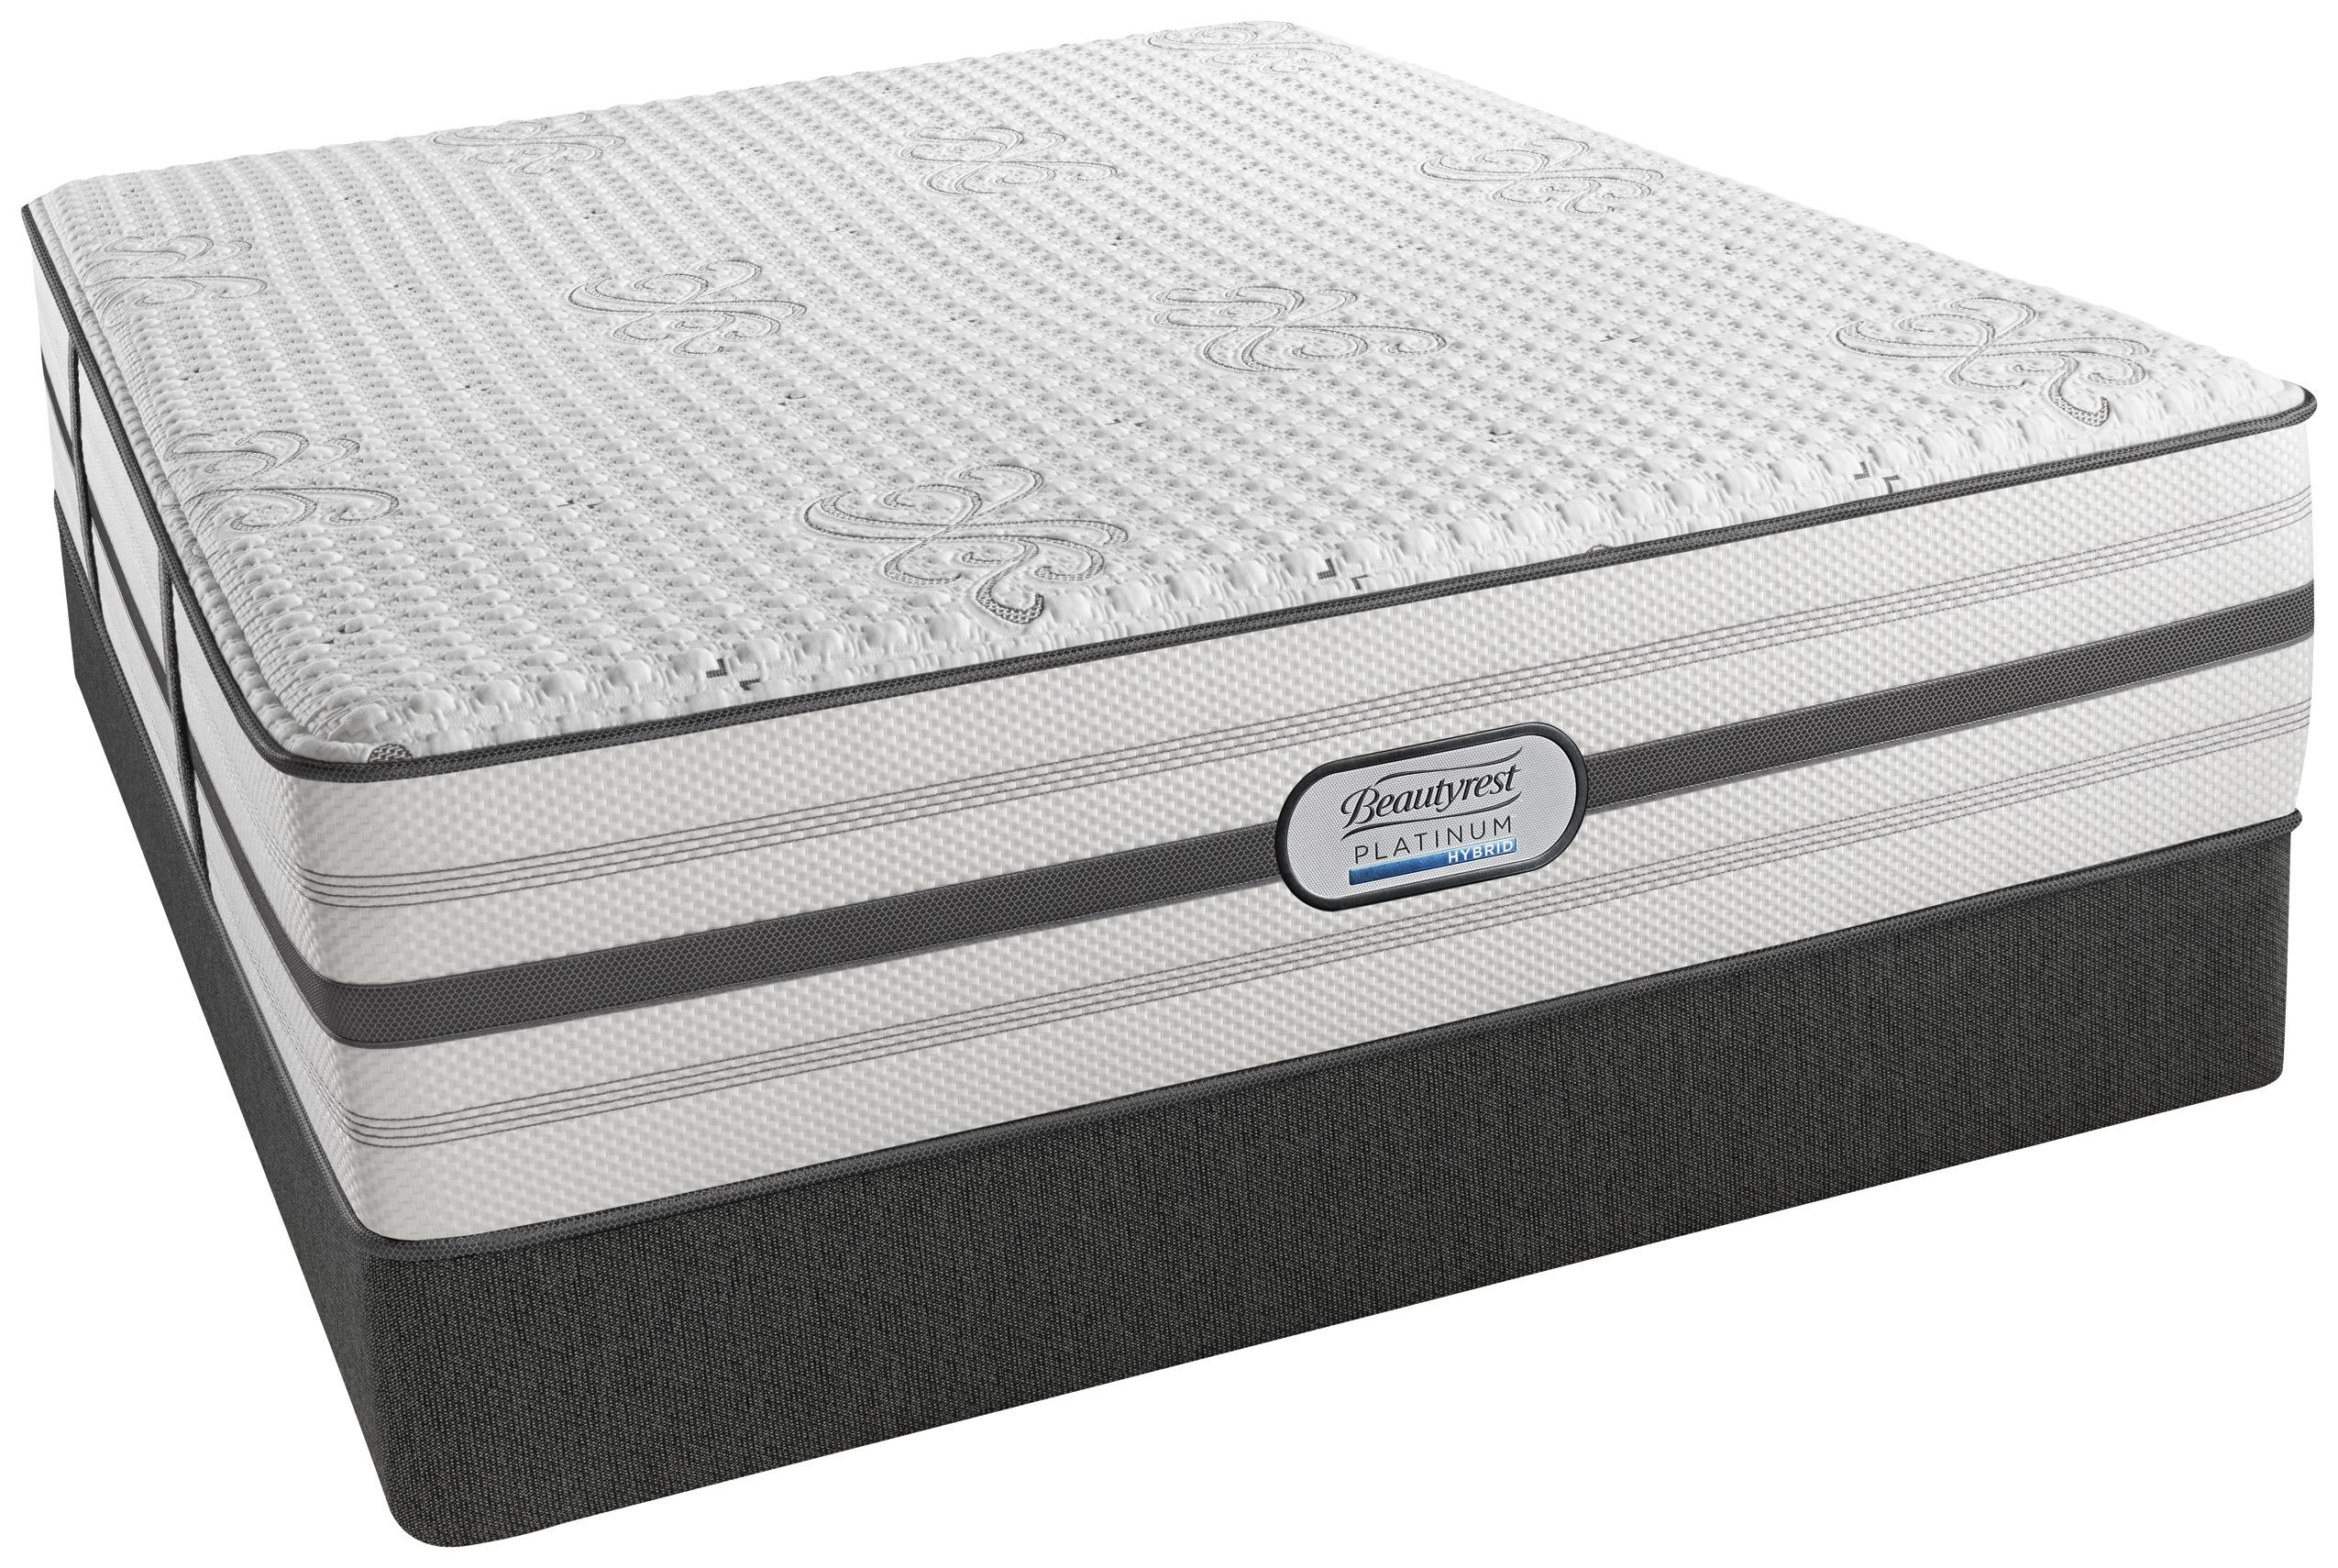 Br Hybrid Platinum Ariane Tight Top Luxury Firm King Size Mattress With Foundation From Simmons